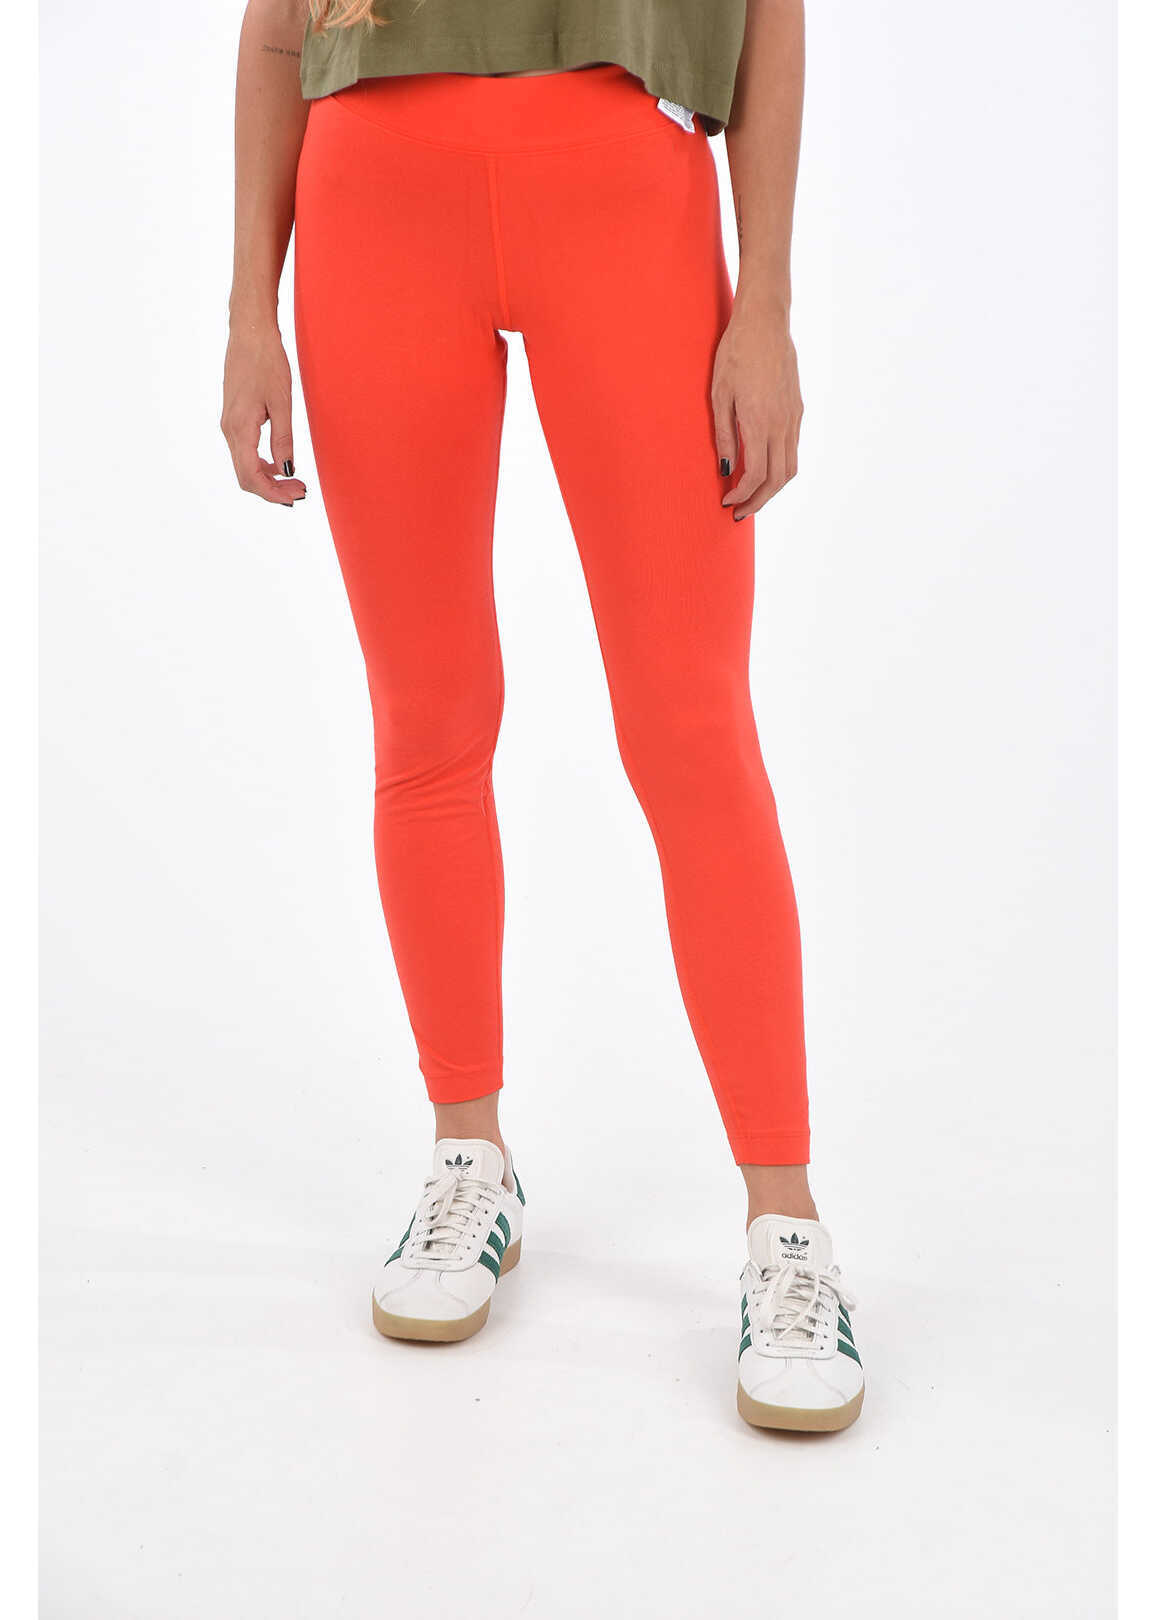 Nike Stretch Cotton Leggings Red image0